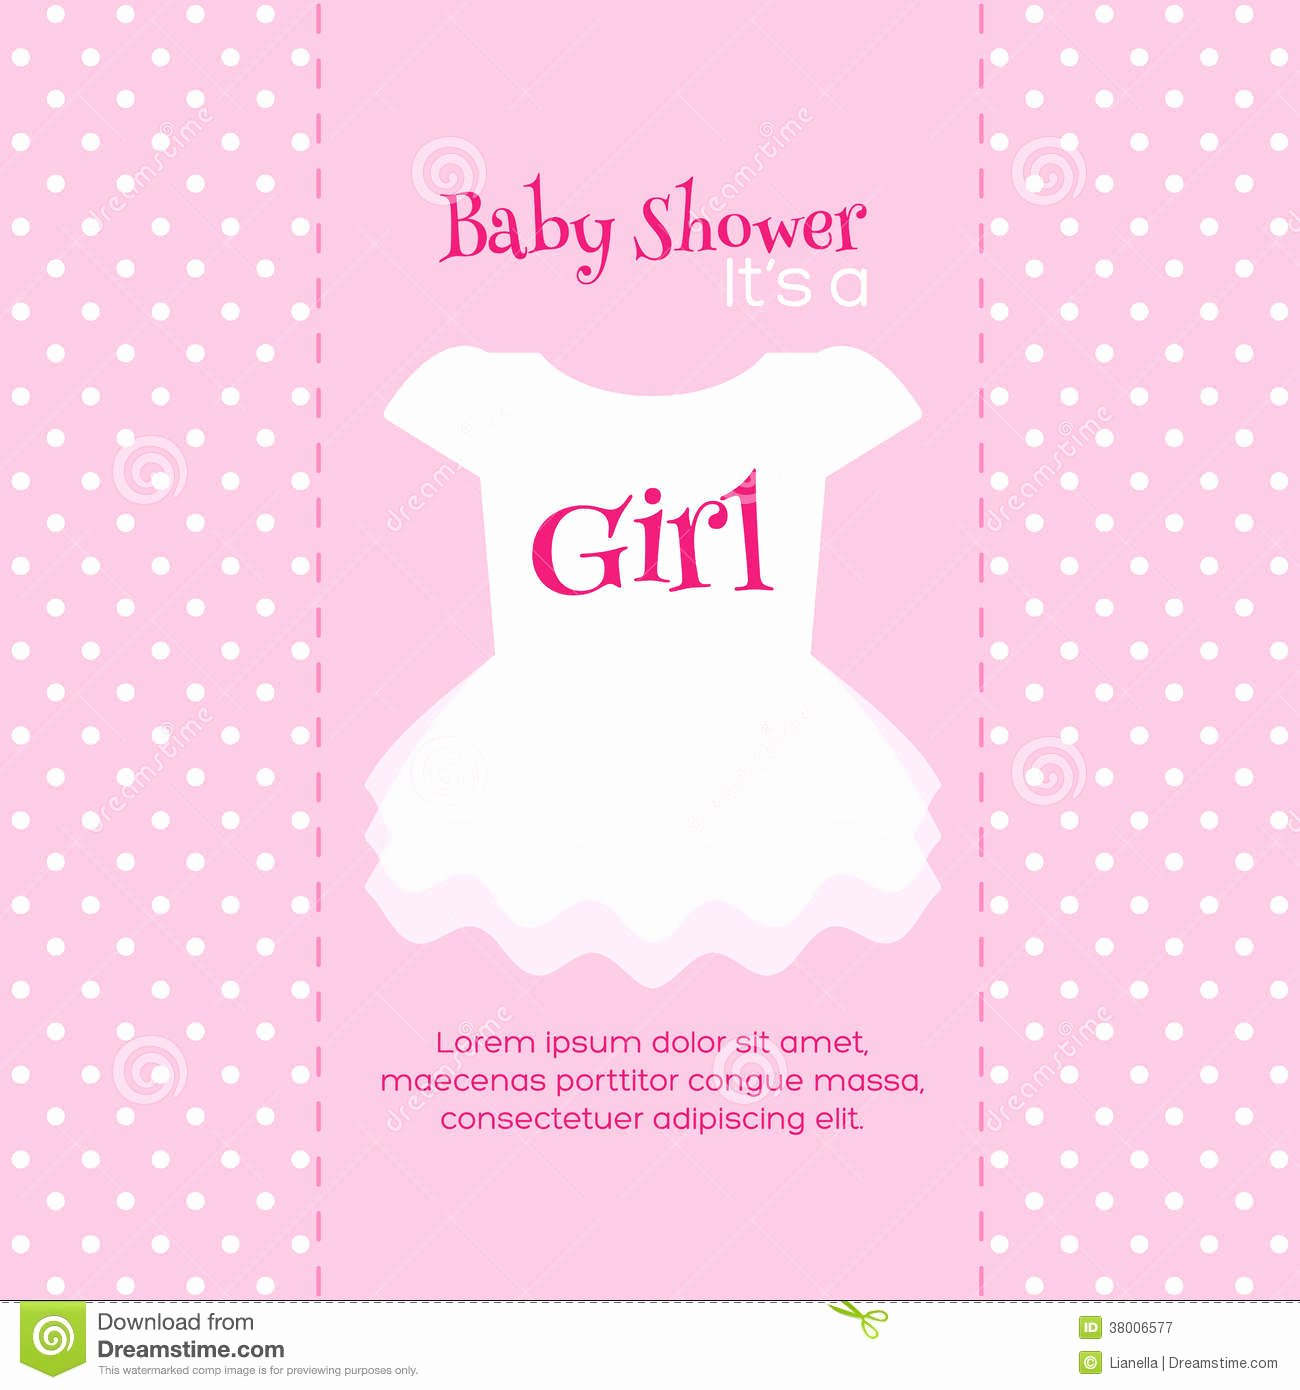 Baby Shower Invitation Free Template Inspirational Microsoft Word Templates for Business Cards